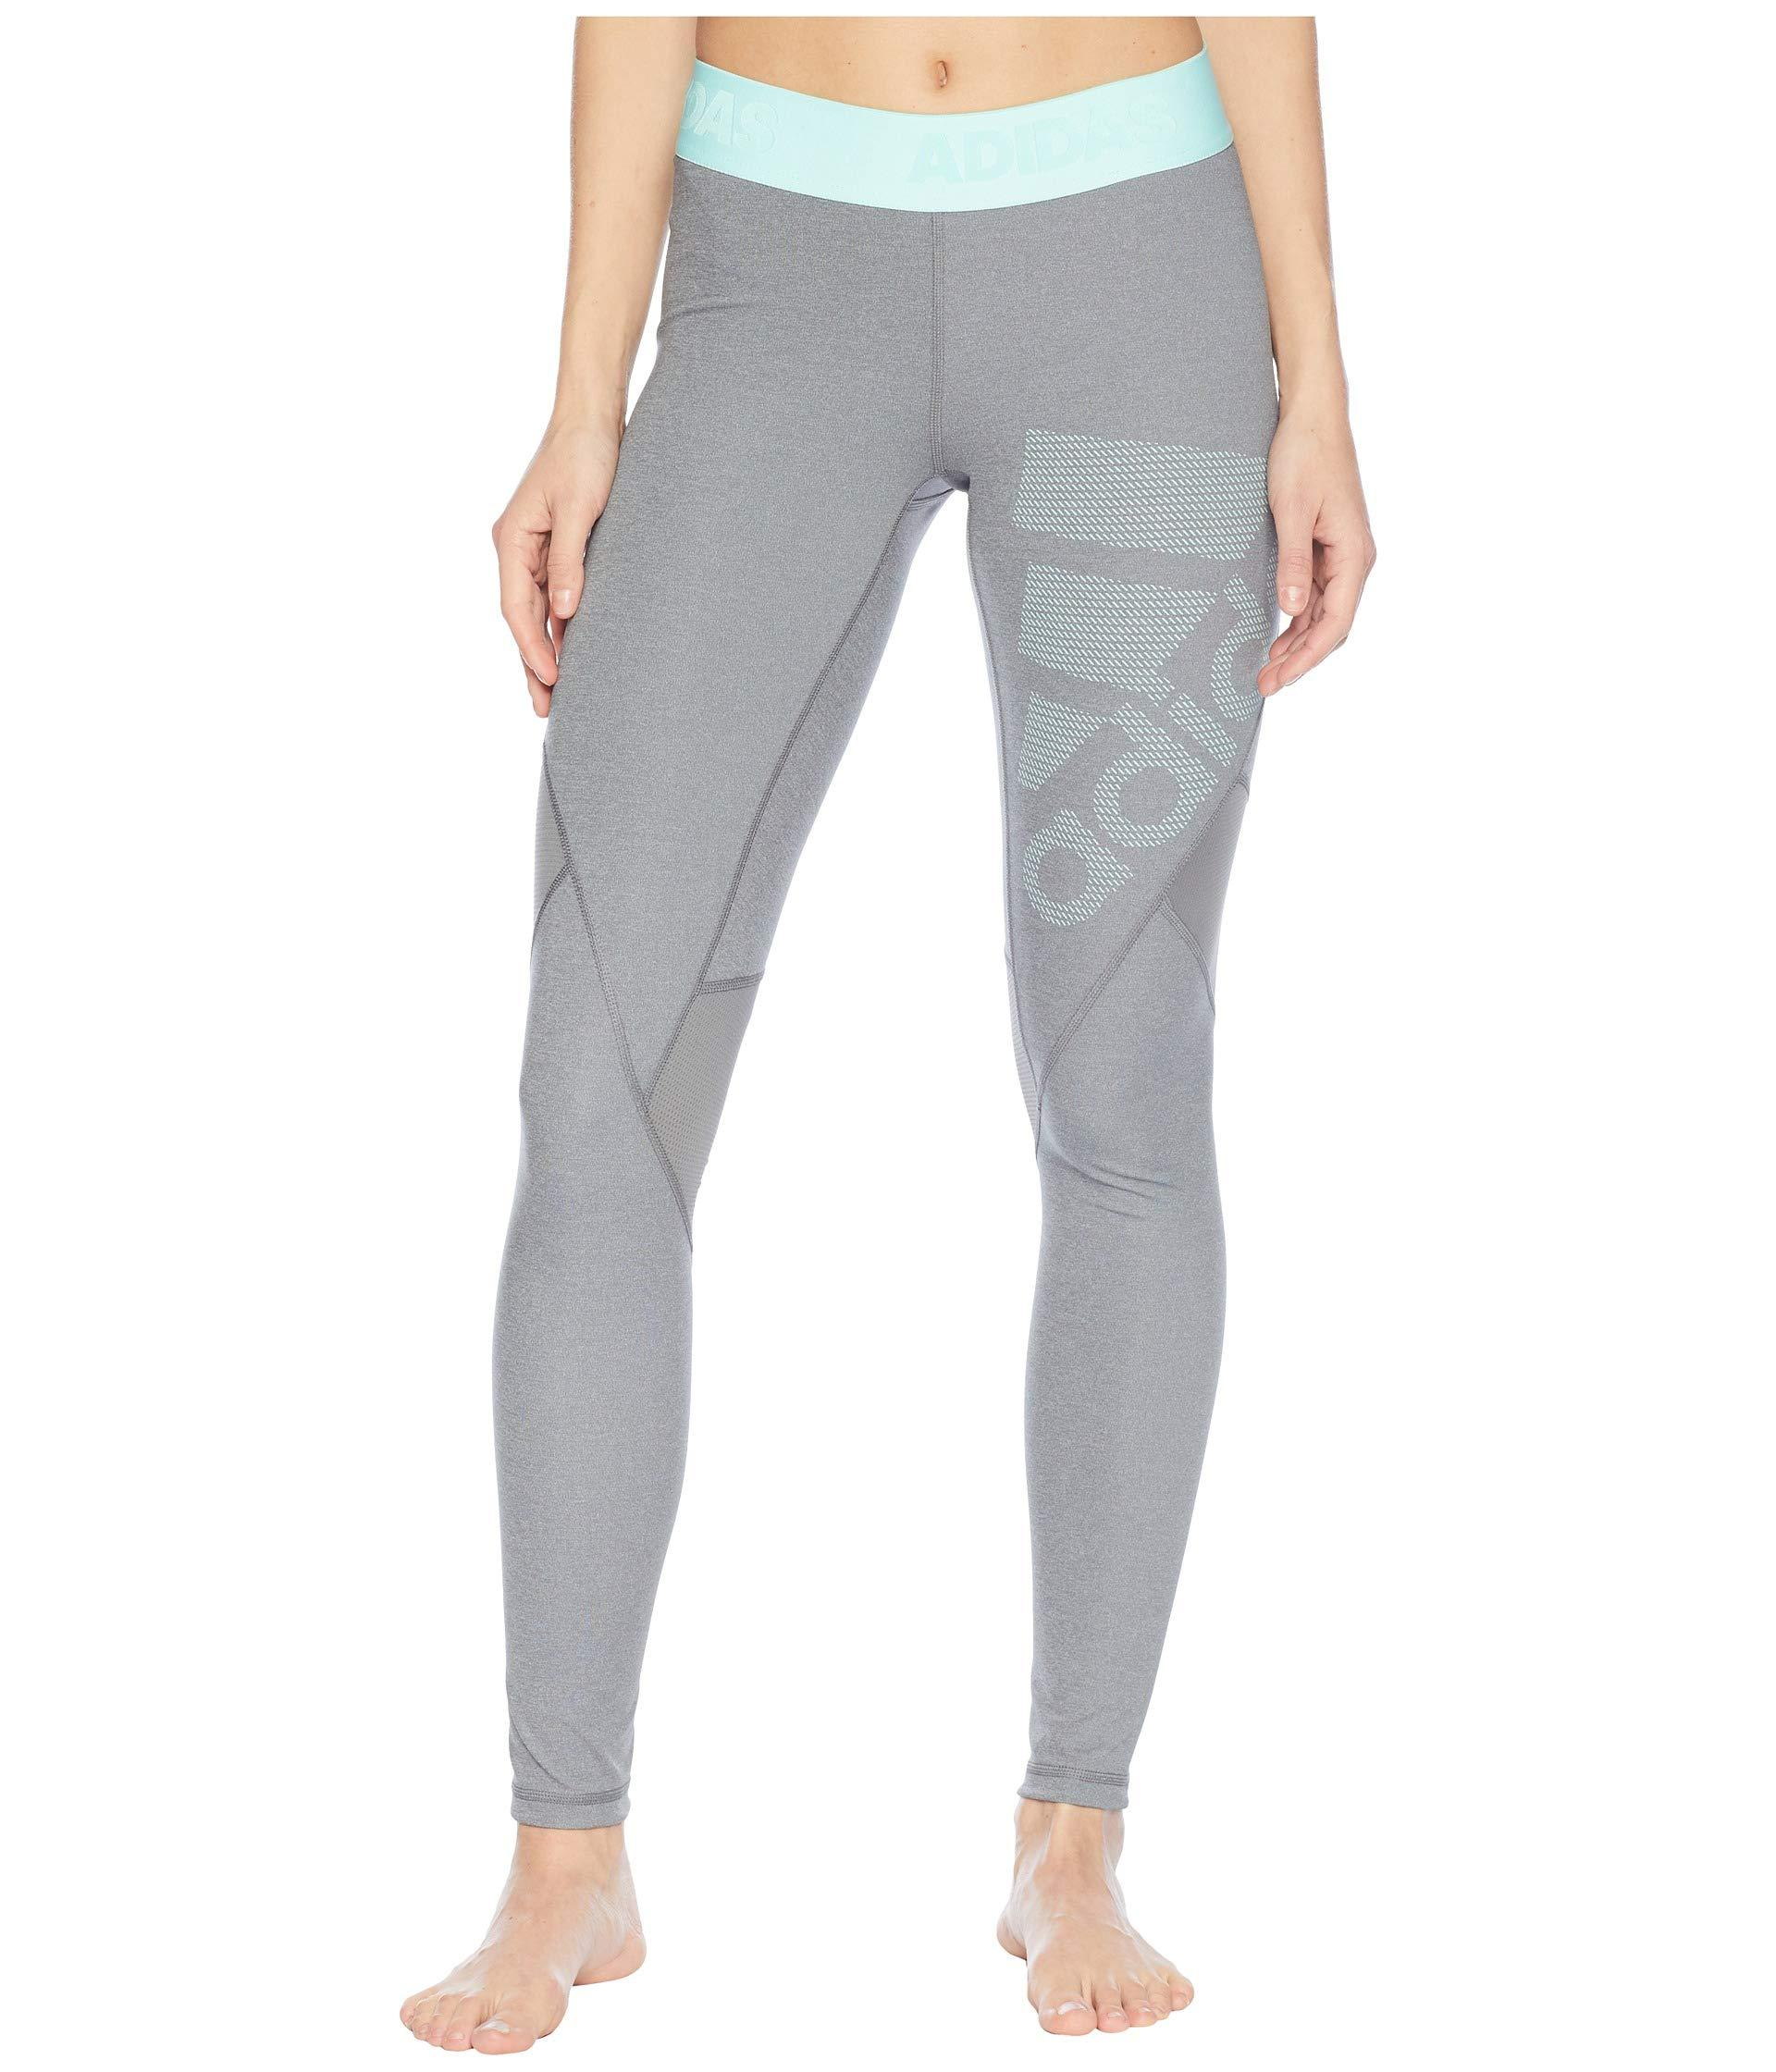 Lyst - adidas Alphaskin Sport Long Logo Tights in Gray 499eea326d3